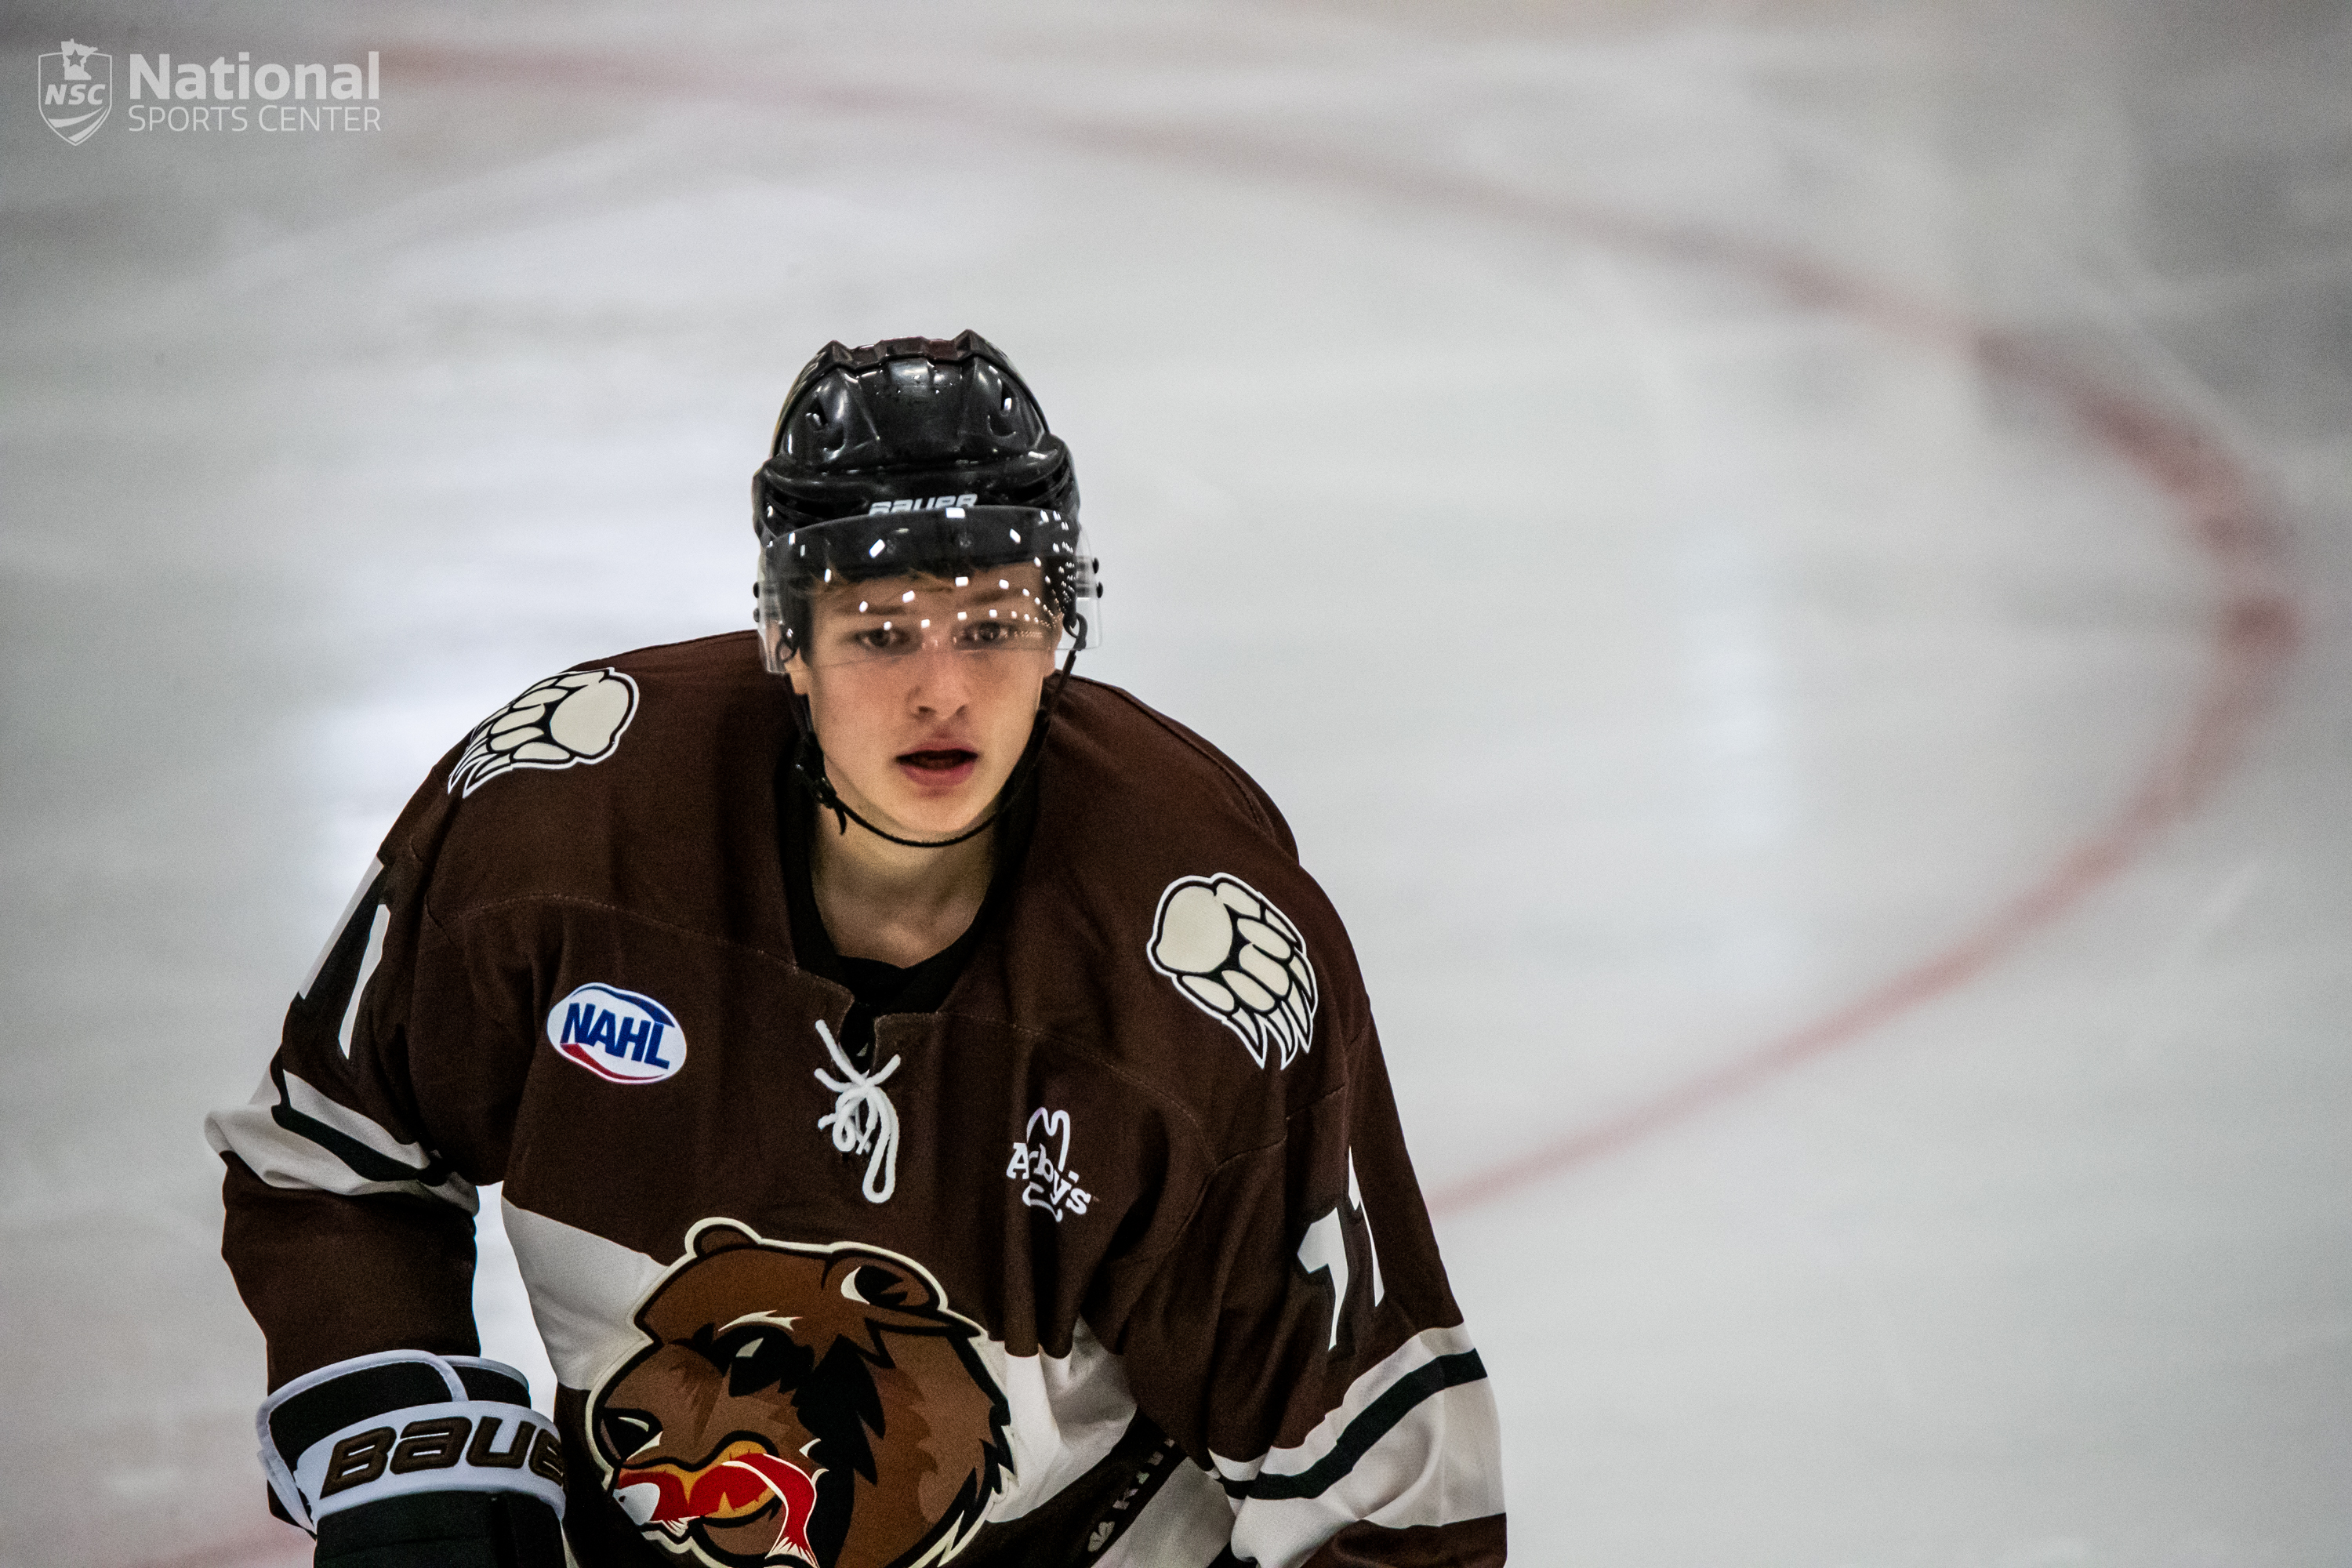 NAHL Fall Showcase 2019 (11)